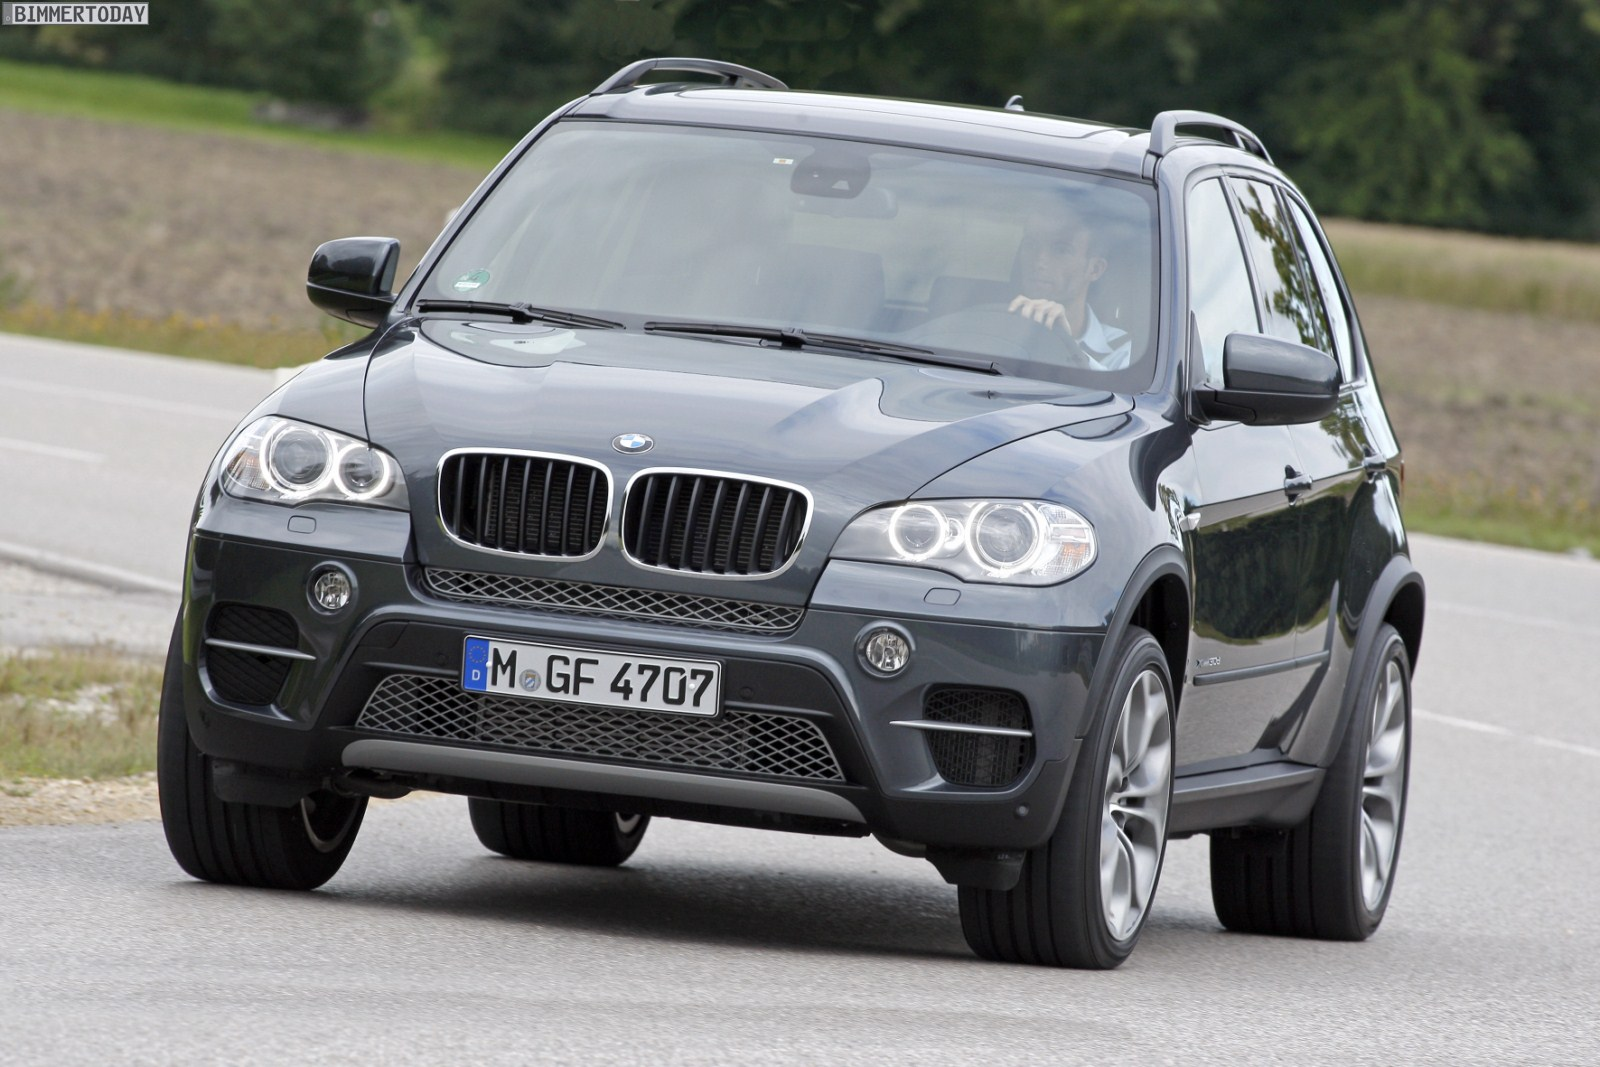 2012 Bmw X5 (e70) - pictures, information and specs - Auto ...